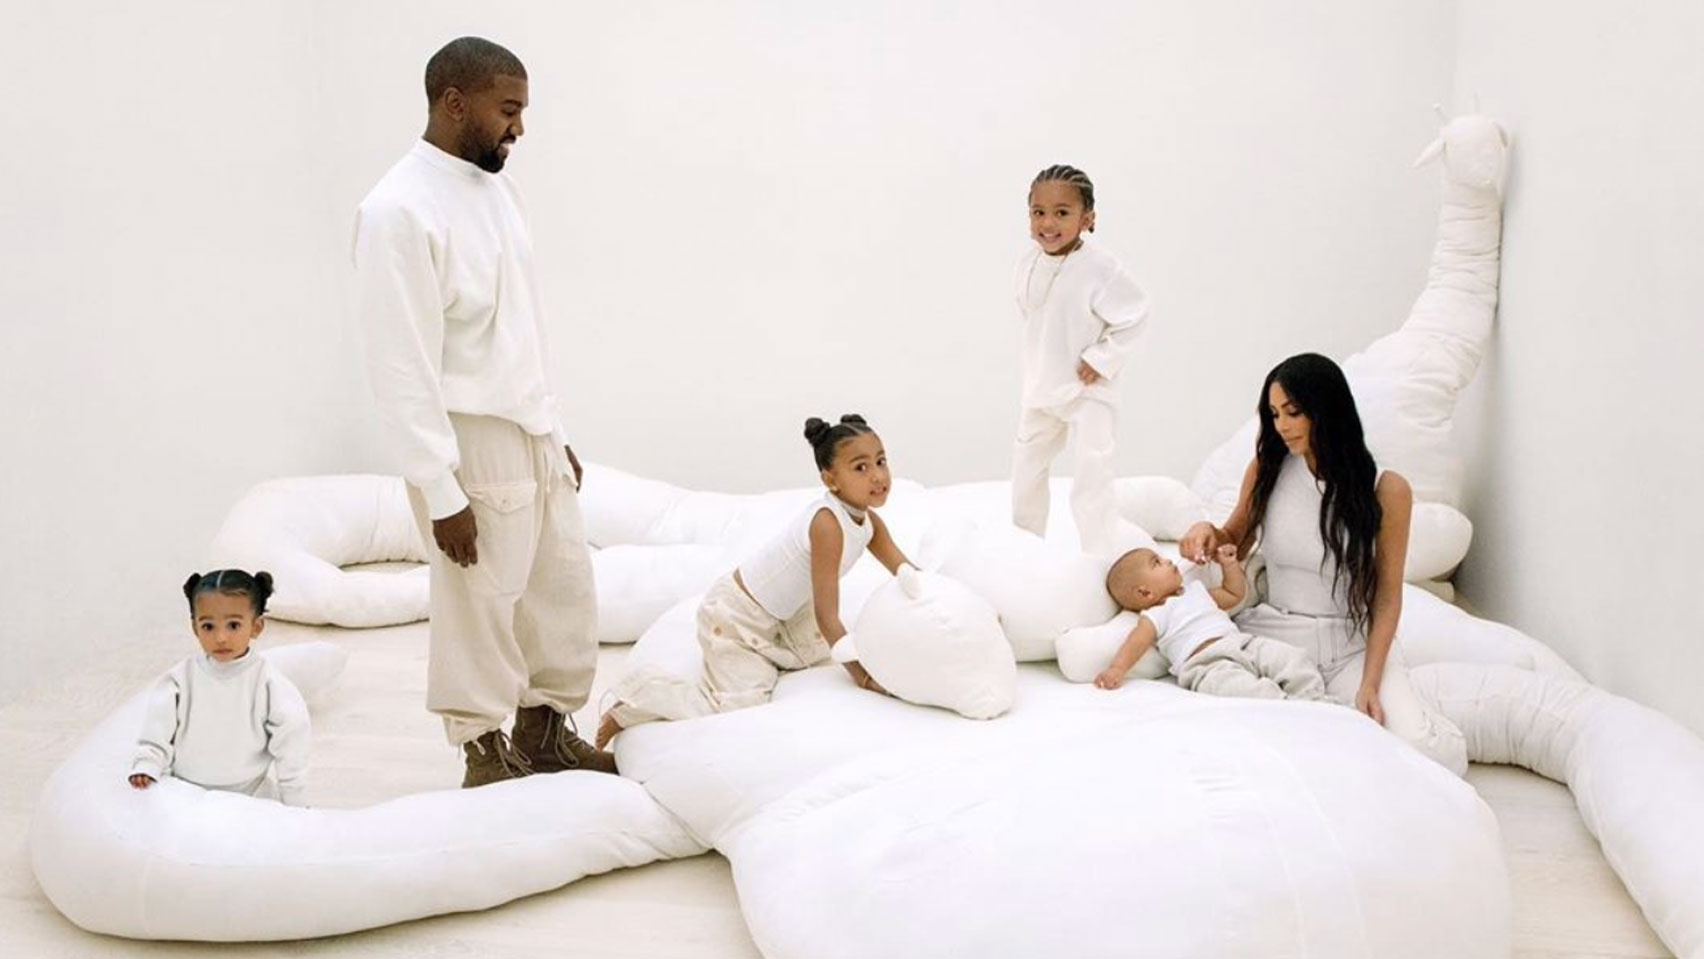 In marriage to Kanye West, Kim Kardashian had four children